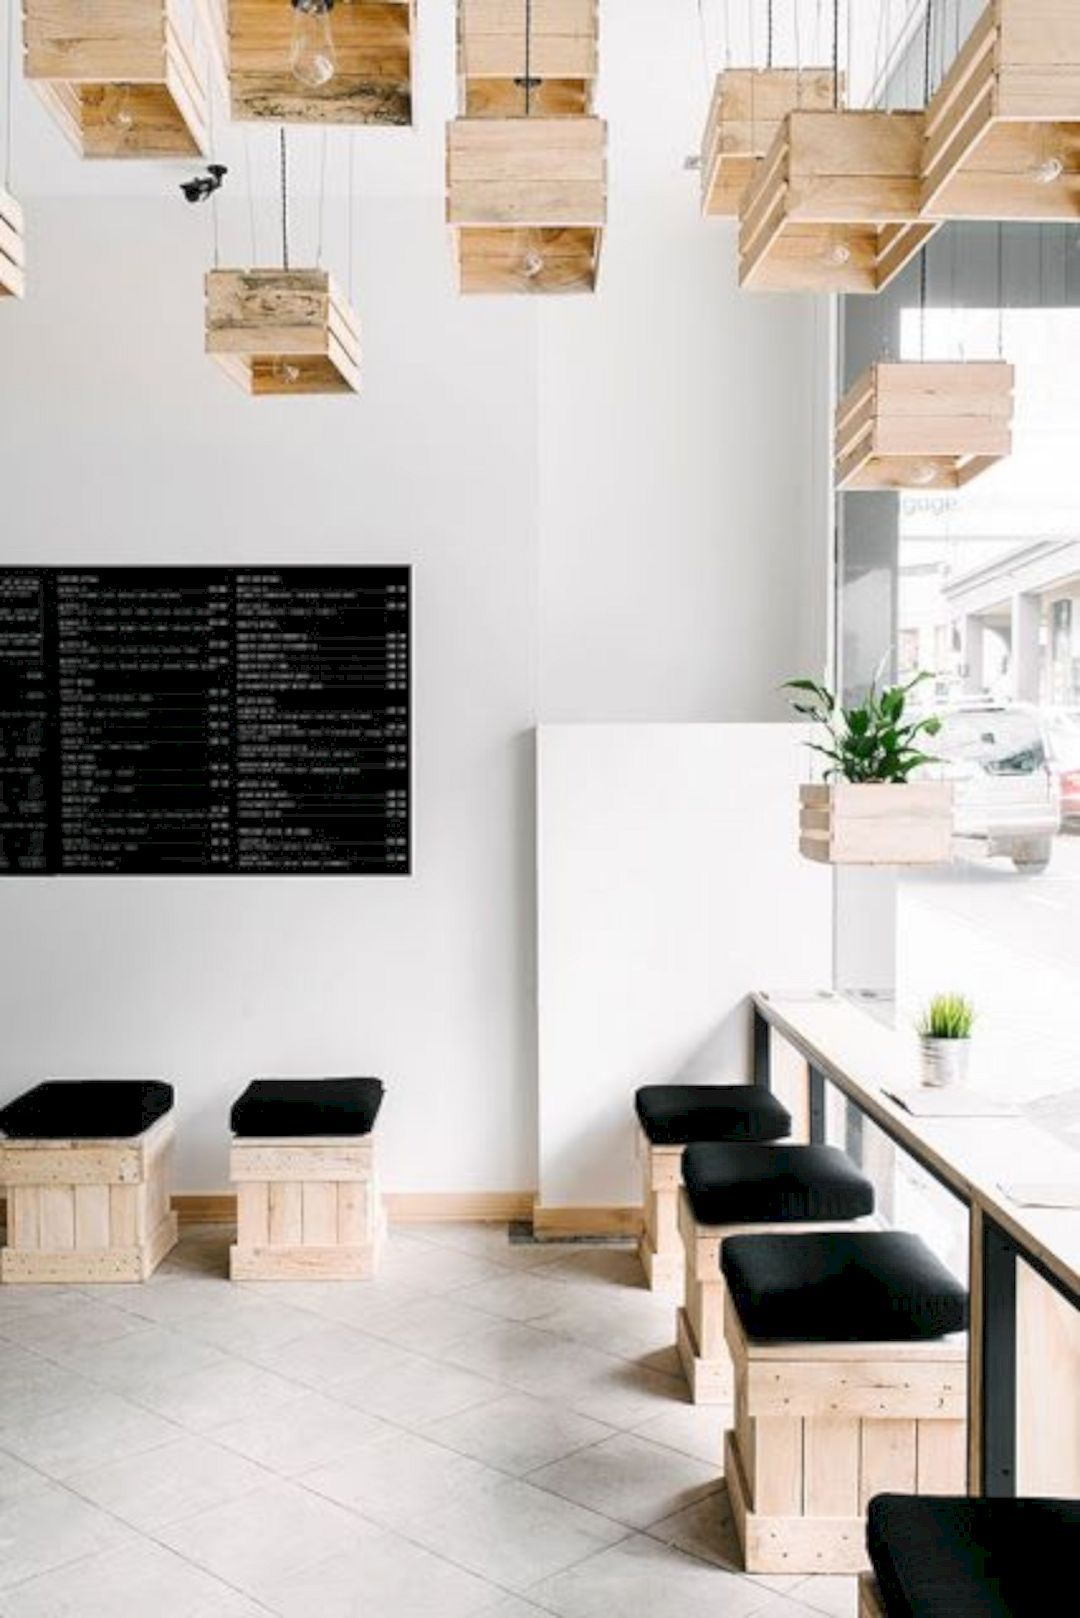 Ordinaire 15 Great Interior Design Ideas For Small Restaurant